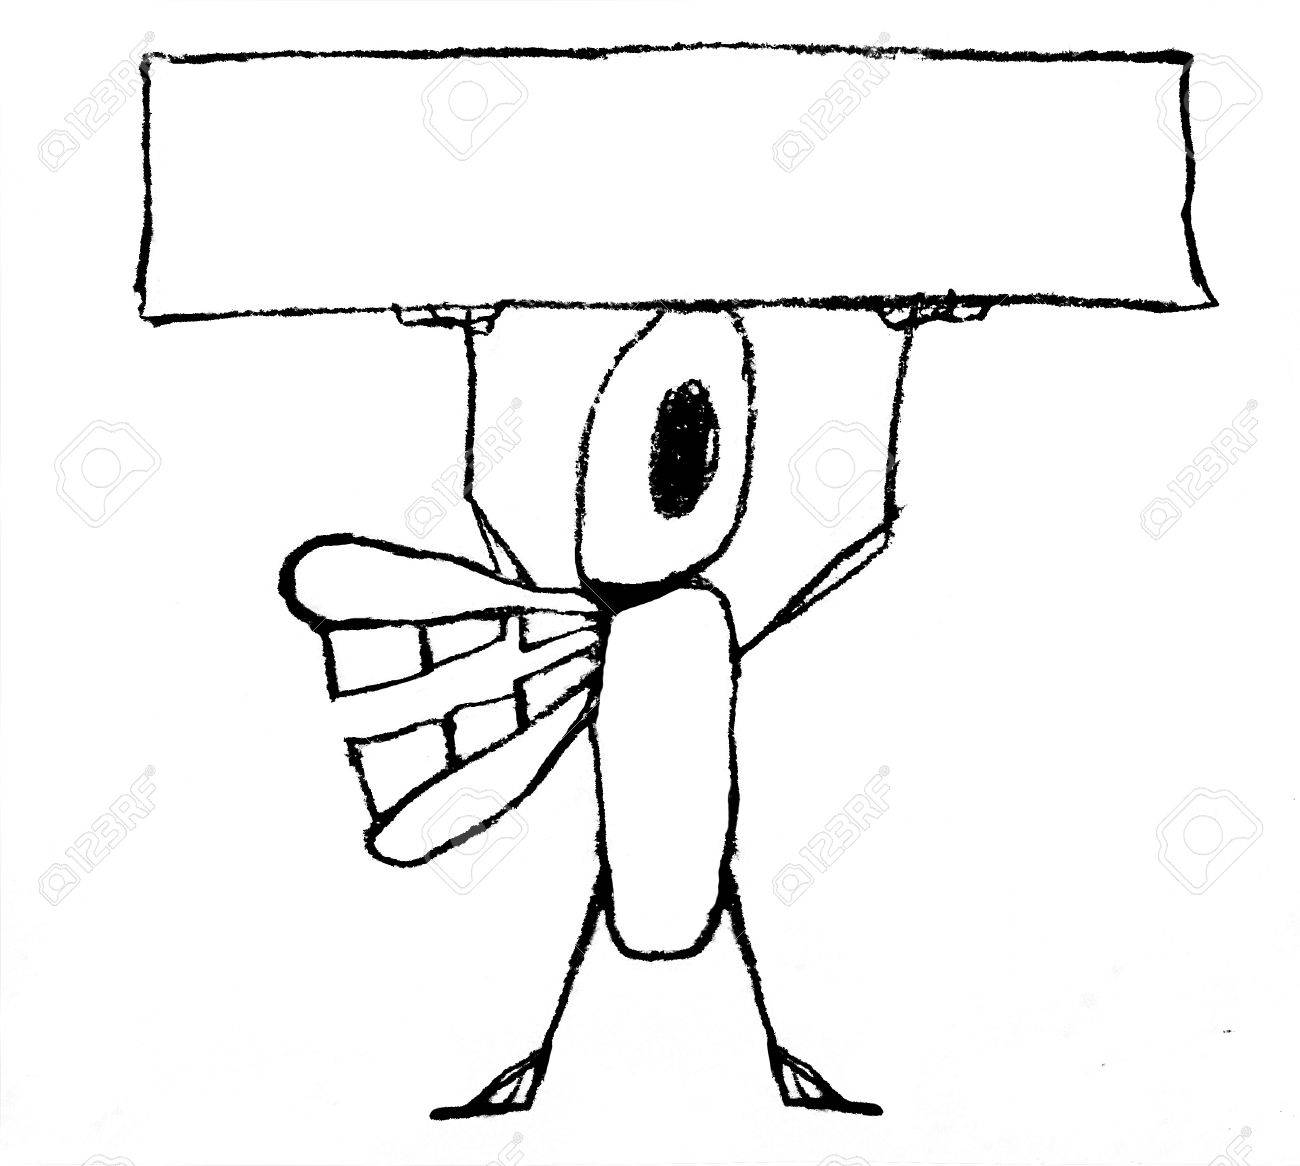 Pencil drawing funny monster cartoon with an empty banner in